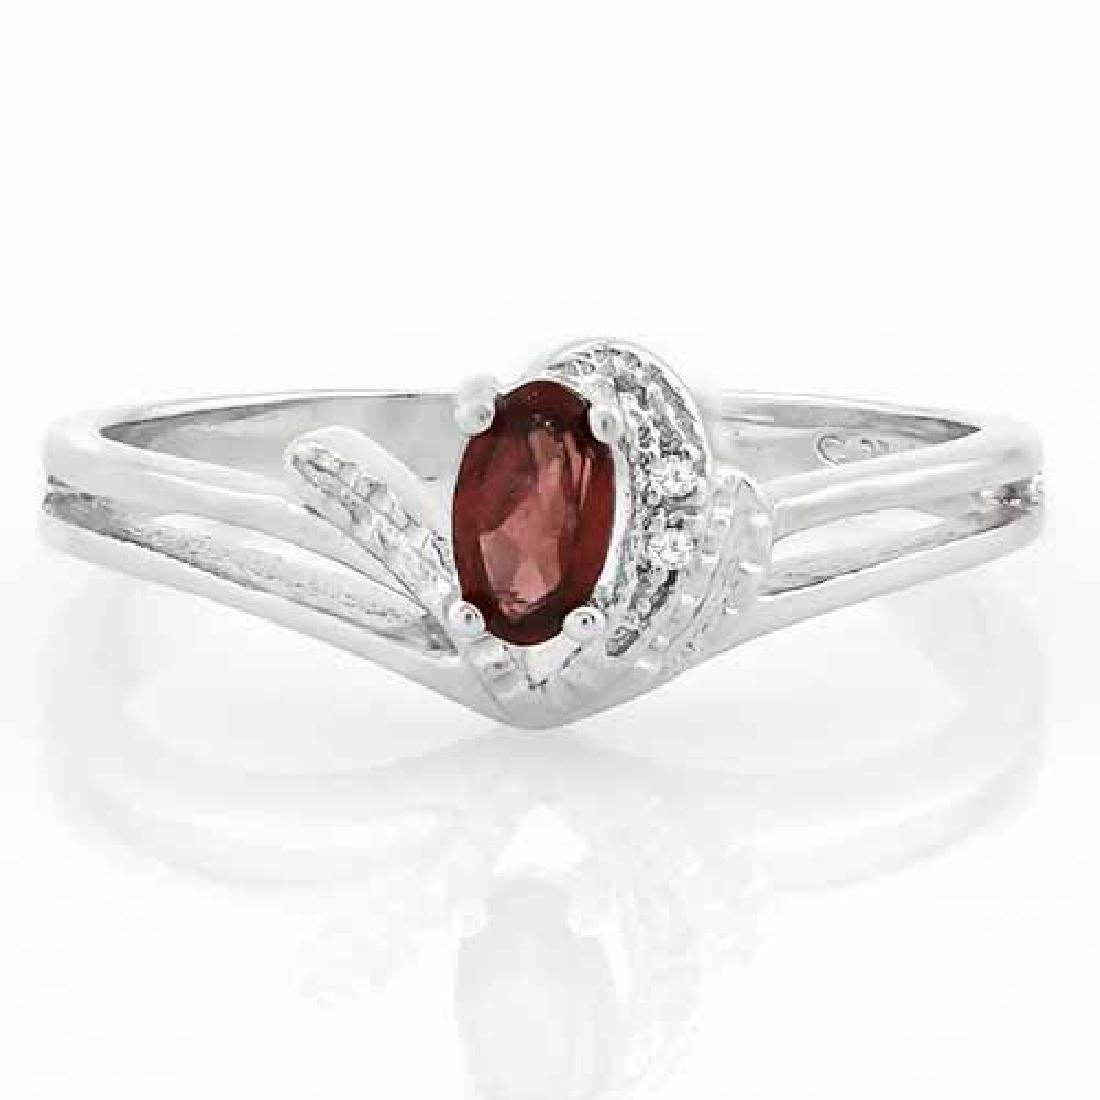 1/4 CARAT GARNET & DIAMOND 925 STERLING SILVER RING